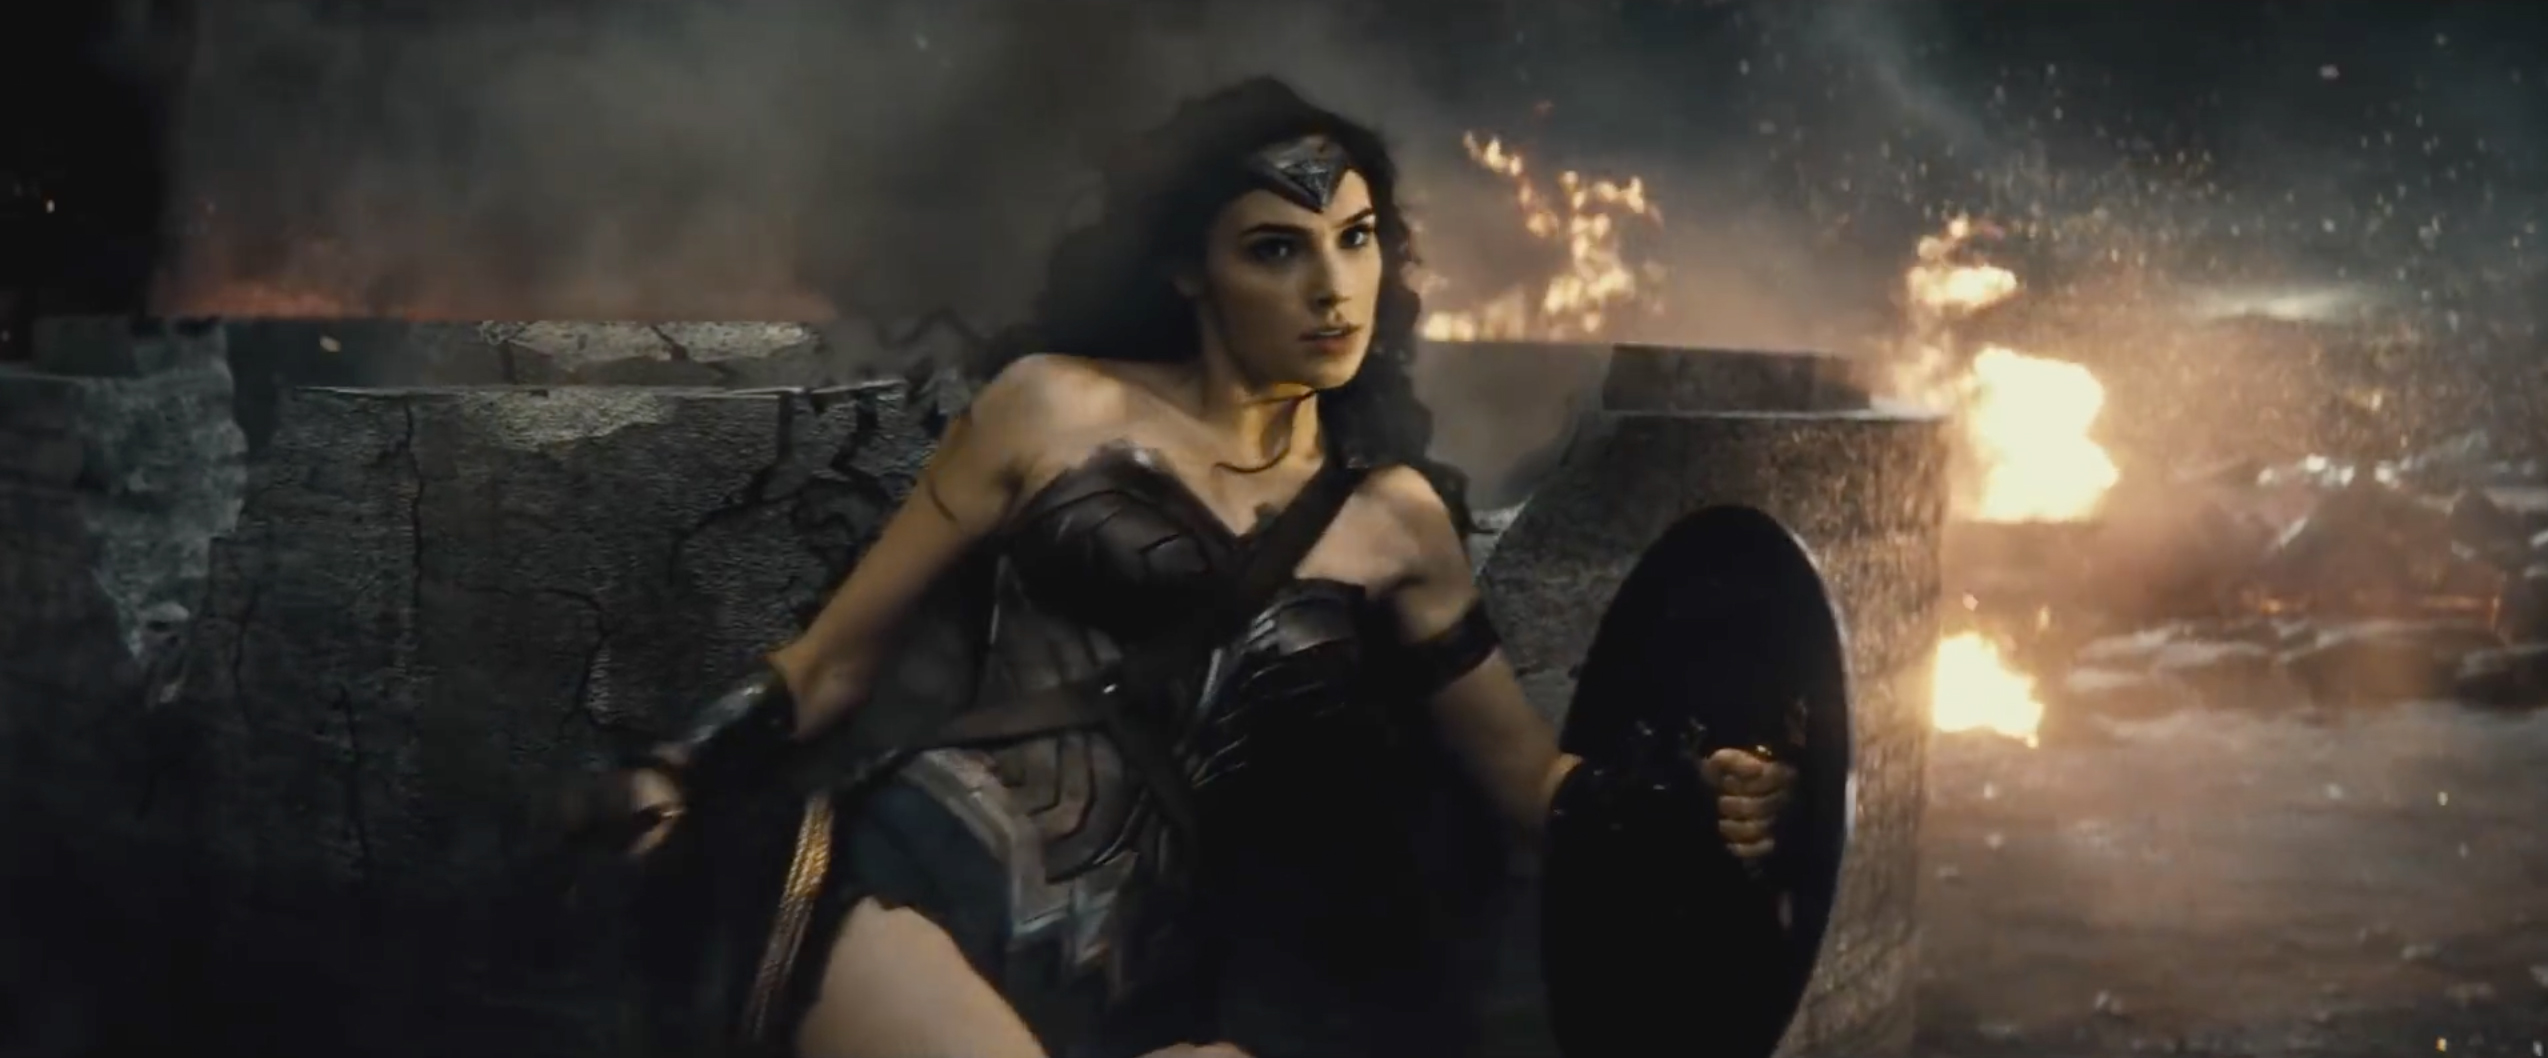 Gal Gadot as Wonder Woman in Warner Bros. 'Batman v Superman: Dawn of Justice'